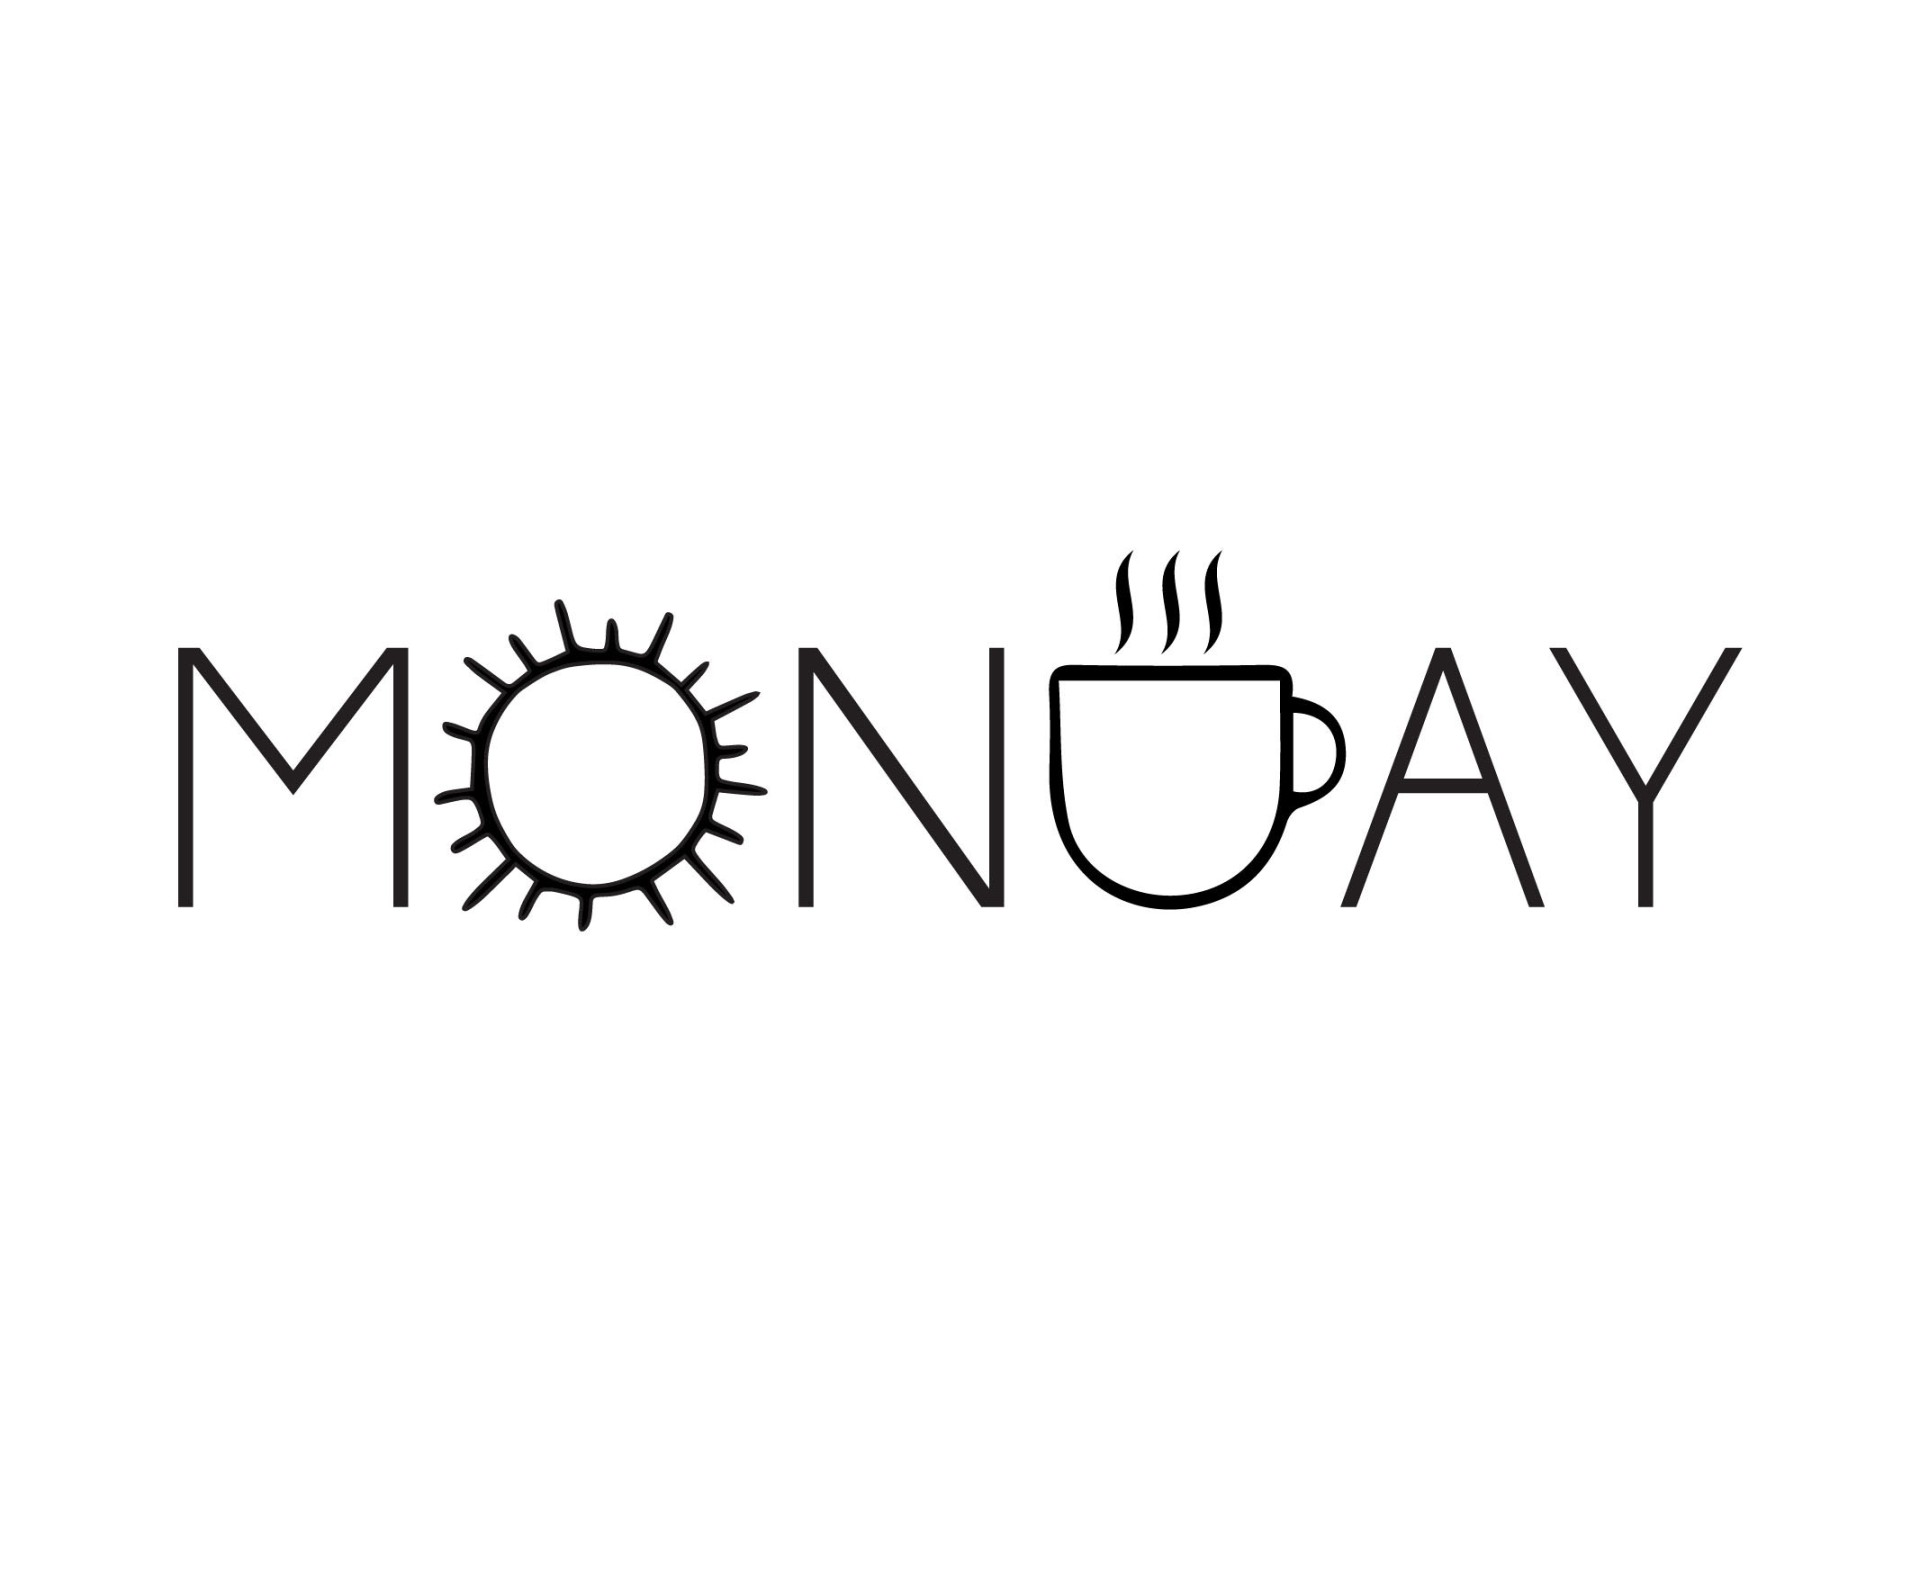 new images of good morning monday